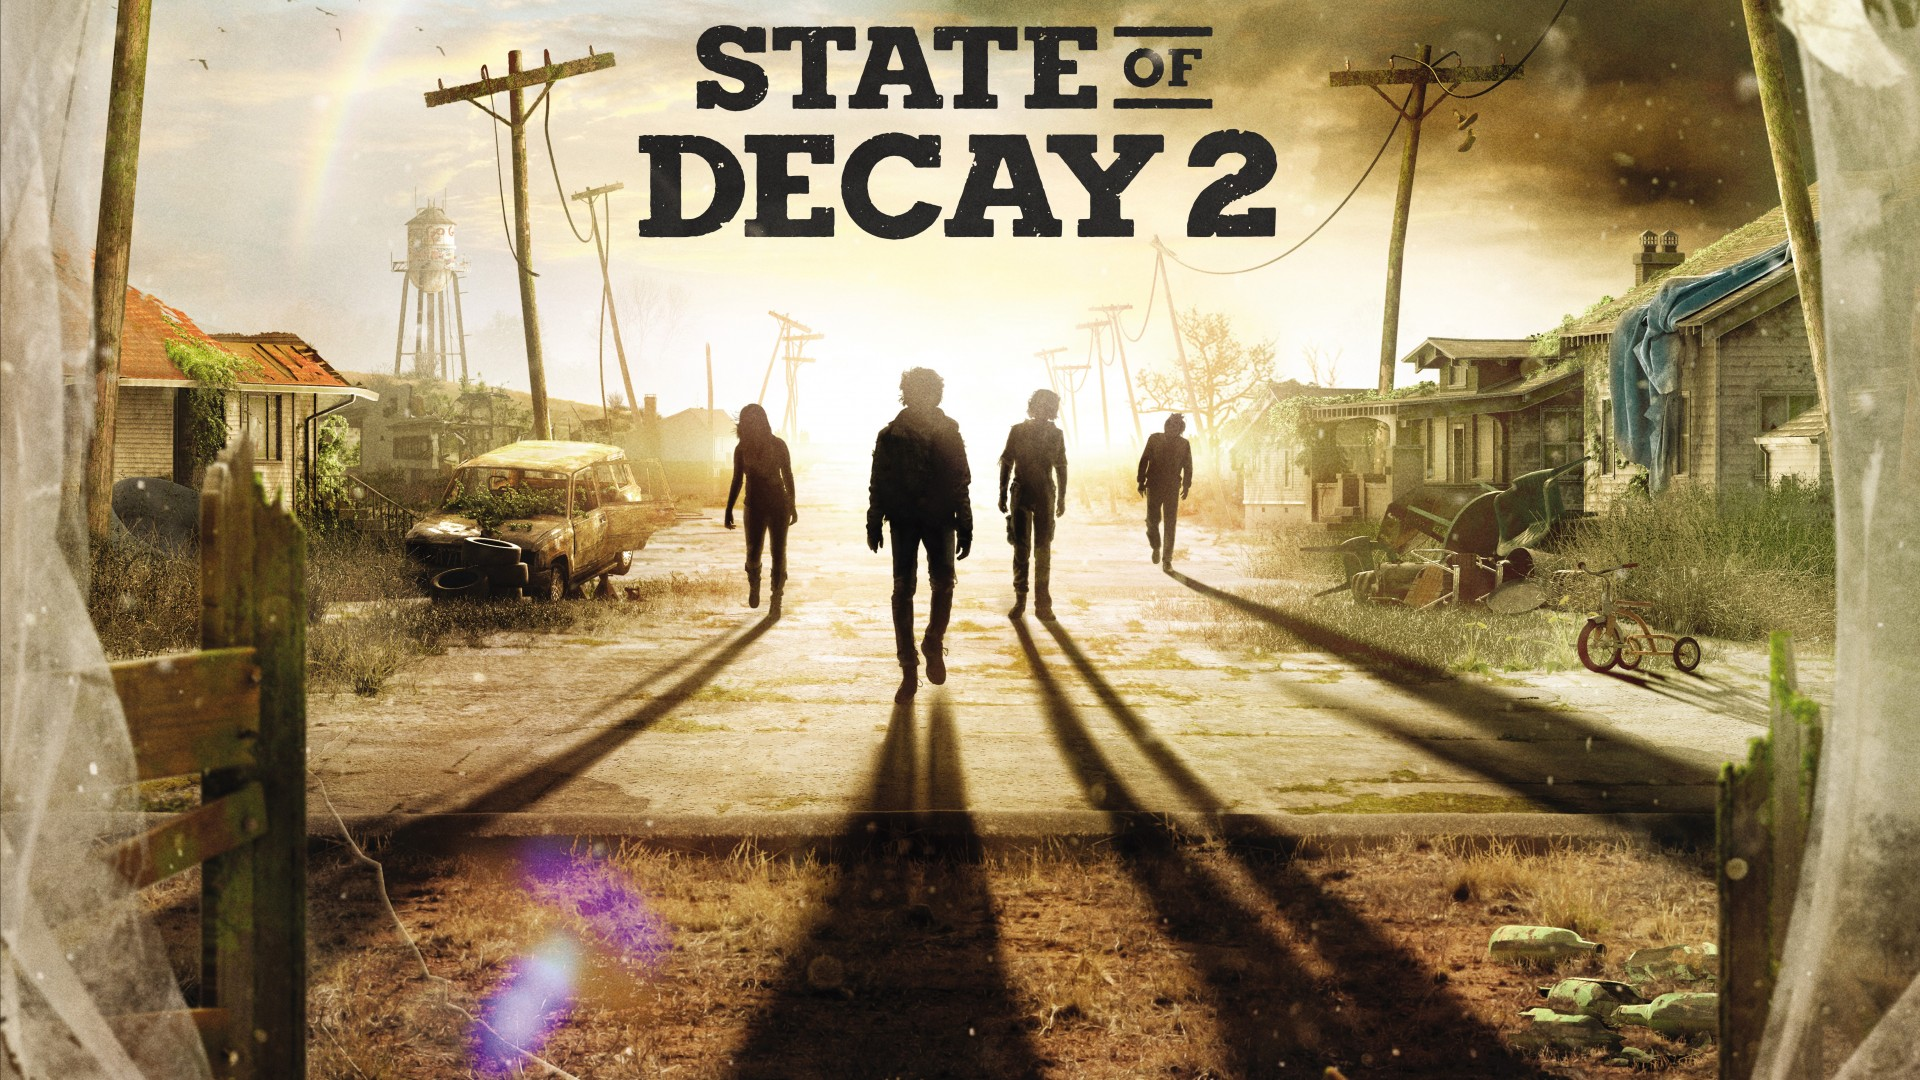 STATE OF DECAY 2 (XBOX ONE/WIN 10) + Bonus